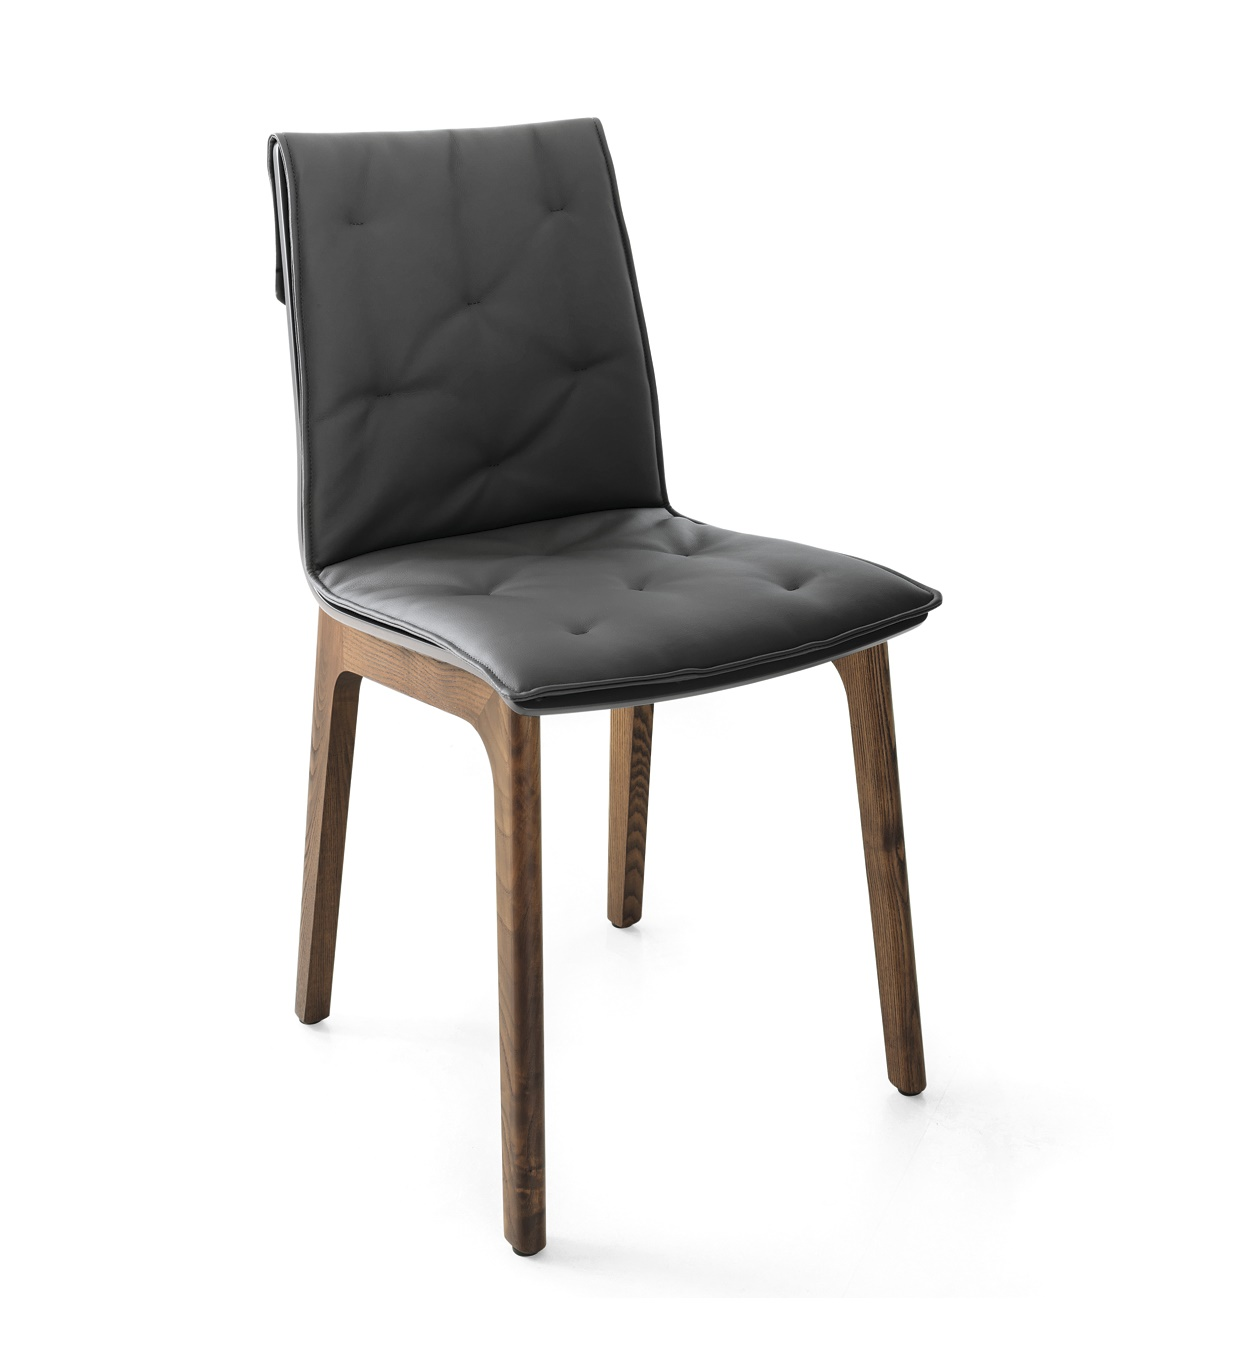 Bontempi Chairs, Alfa Chair with stained solid wood frame and wood shell